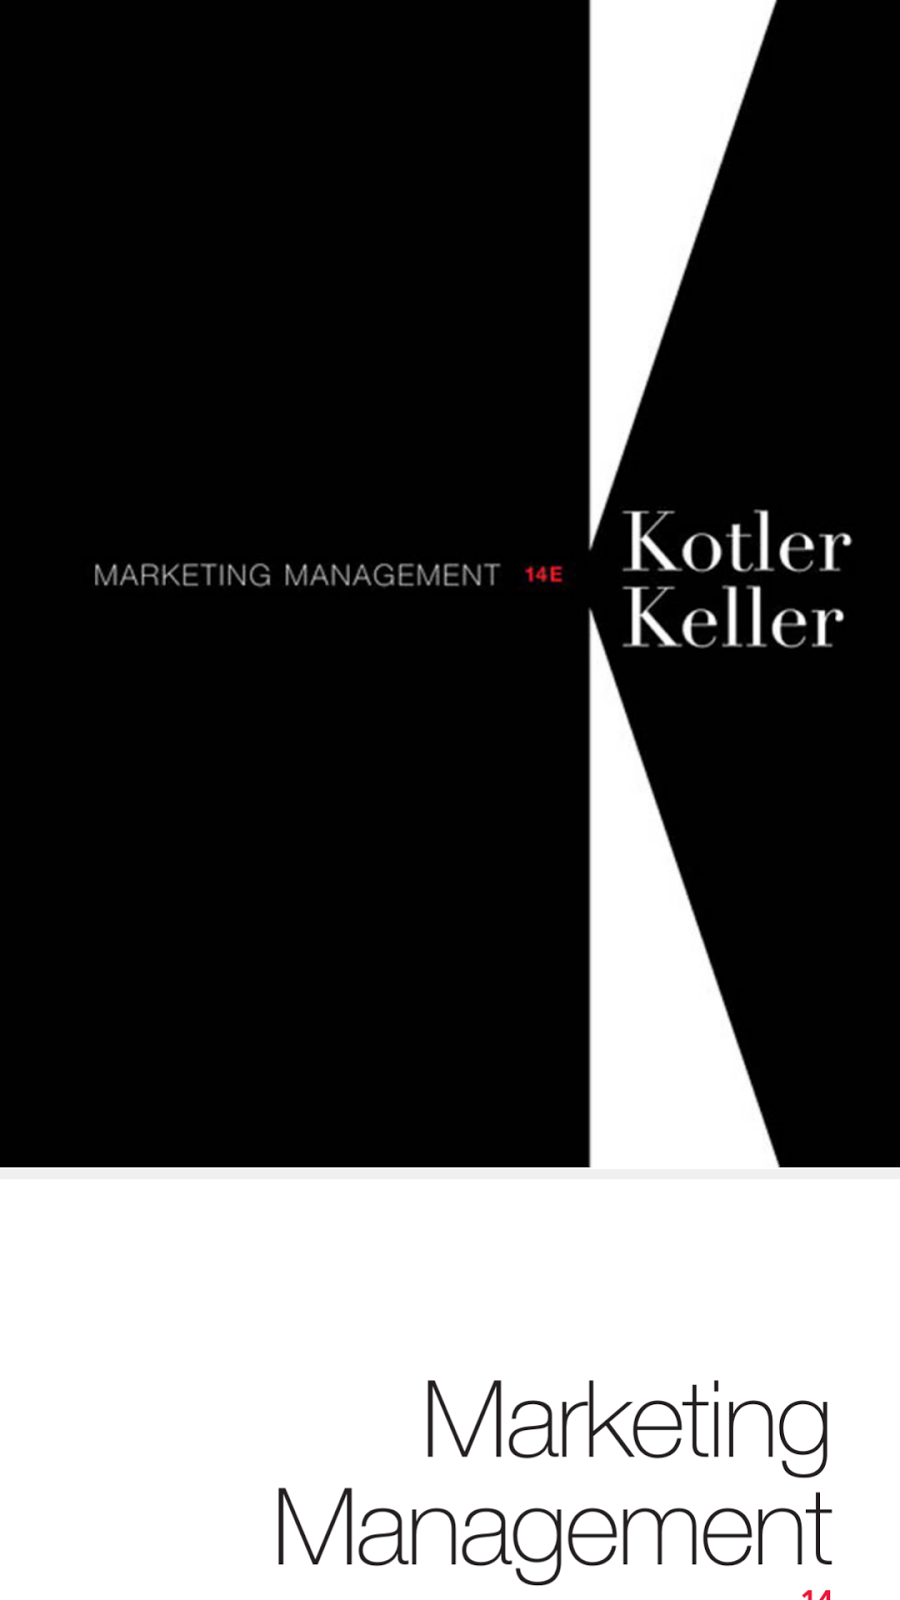 marketing management 14th ed kotler test Test bank for marketing management, 15th edition by philip kotler, kevin lane keller test bank for marketing an introduction, 12th edition by gary armstrong, philip kotler $ 2800 test bank for principles of marketing 16th edition kotler $ 2800.